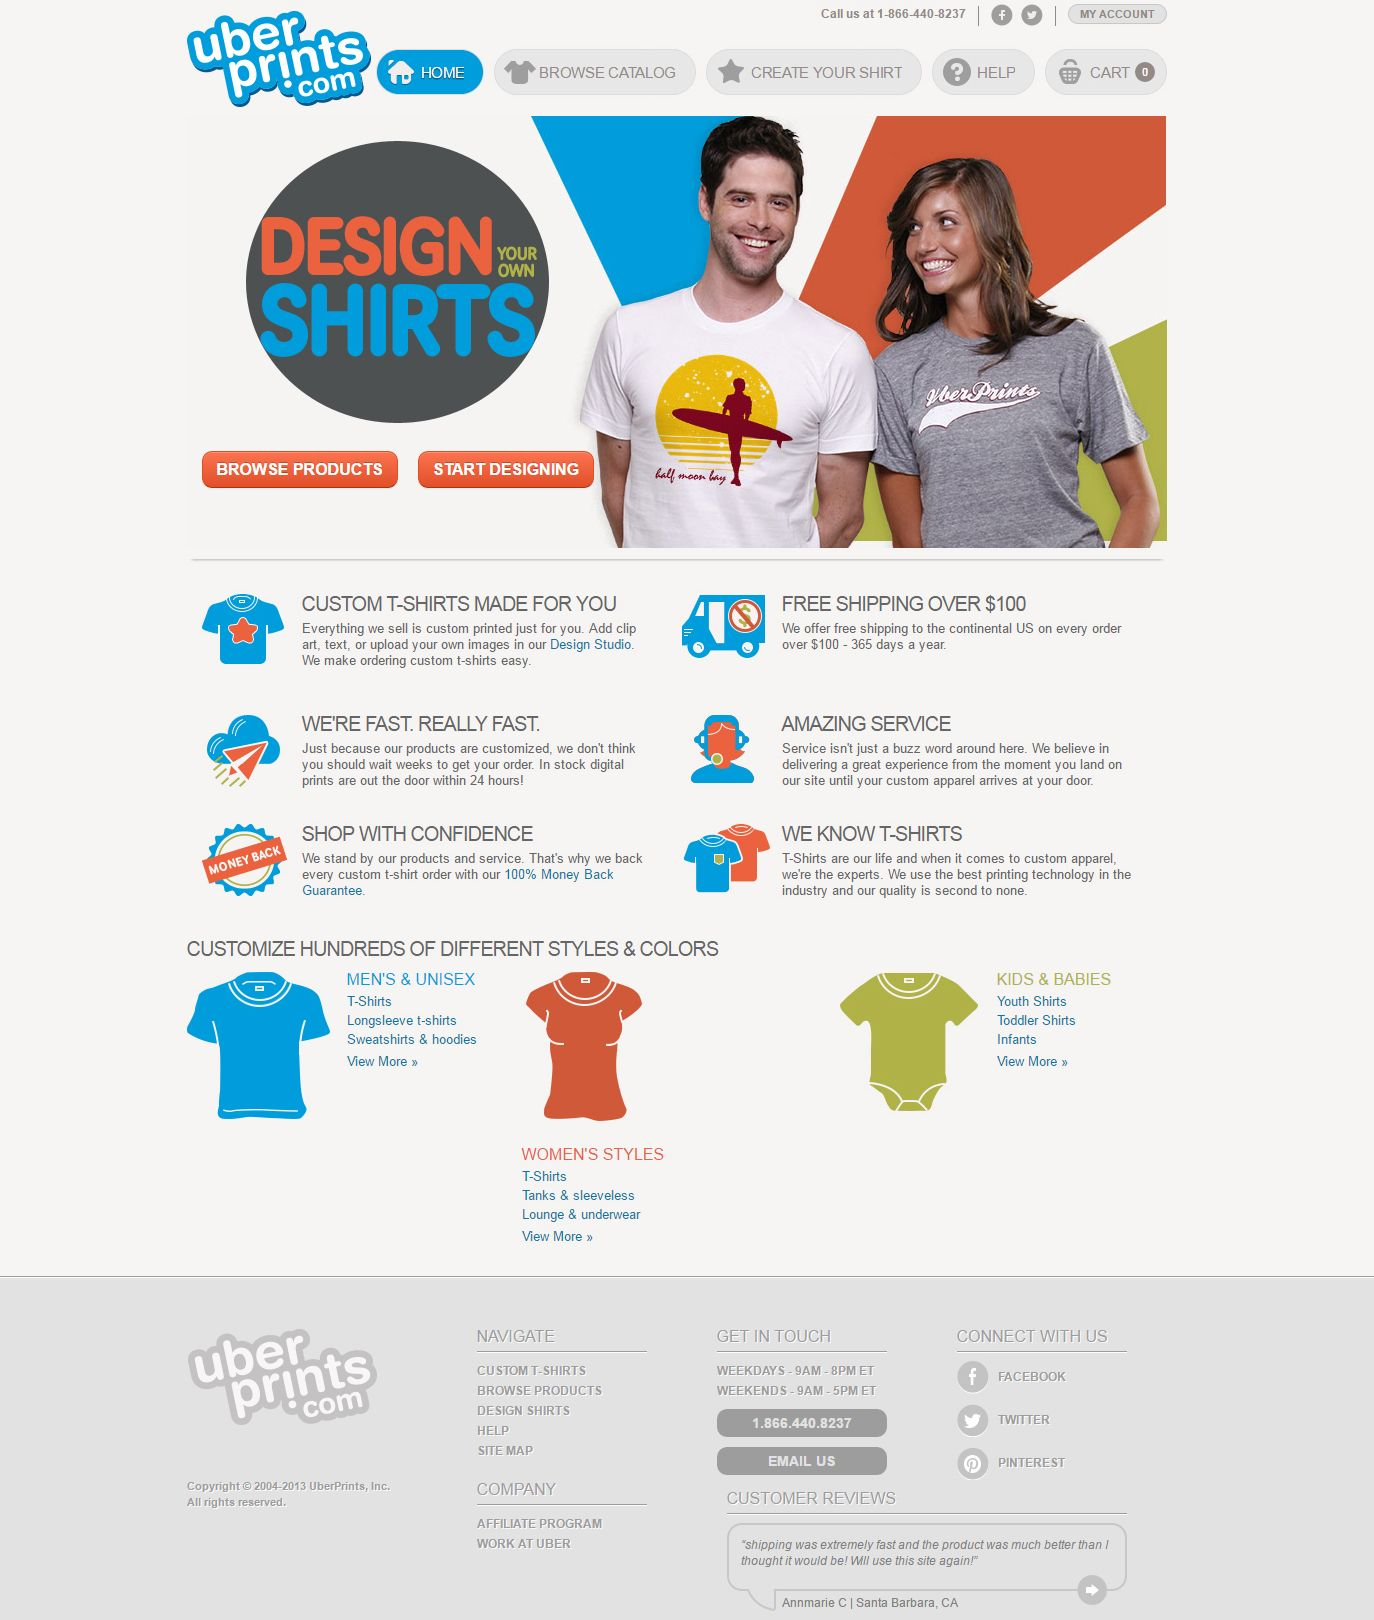 The old look of the UberPrints website design.